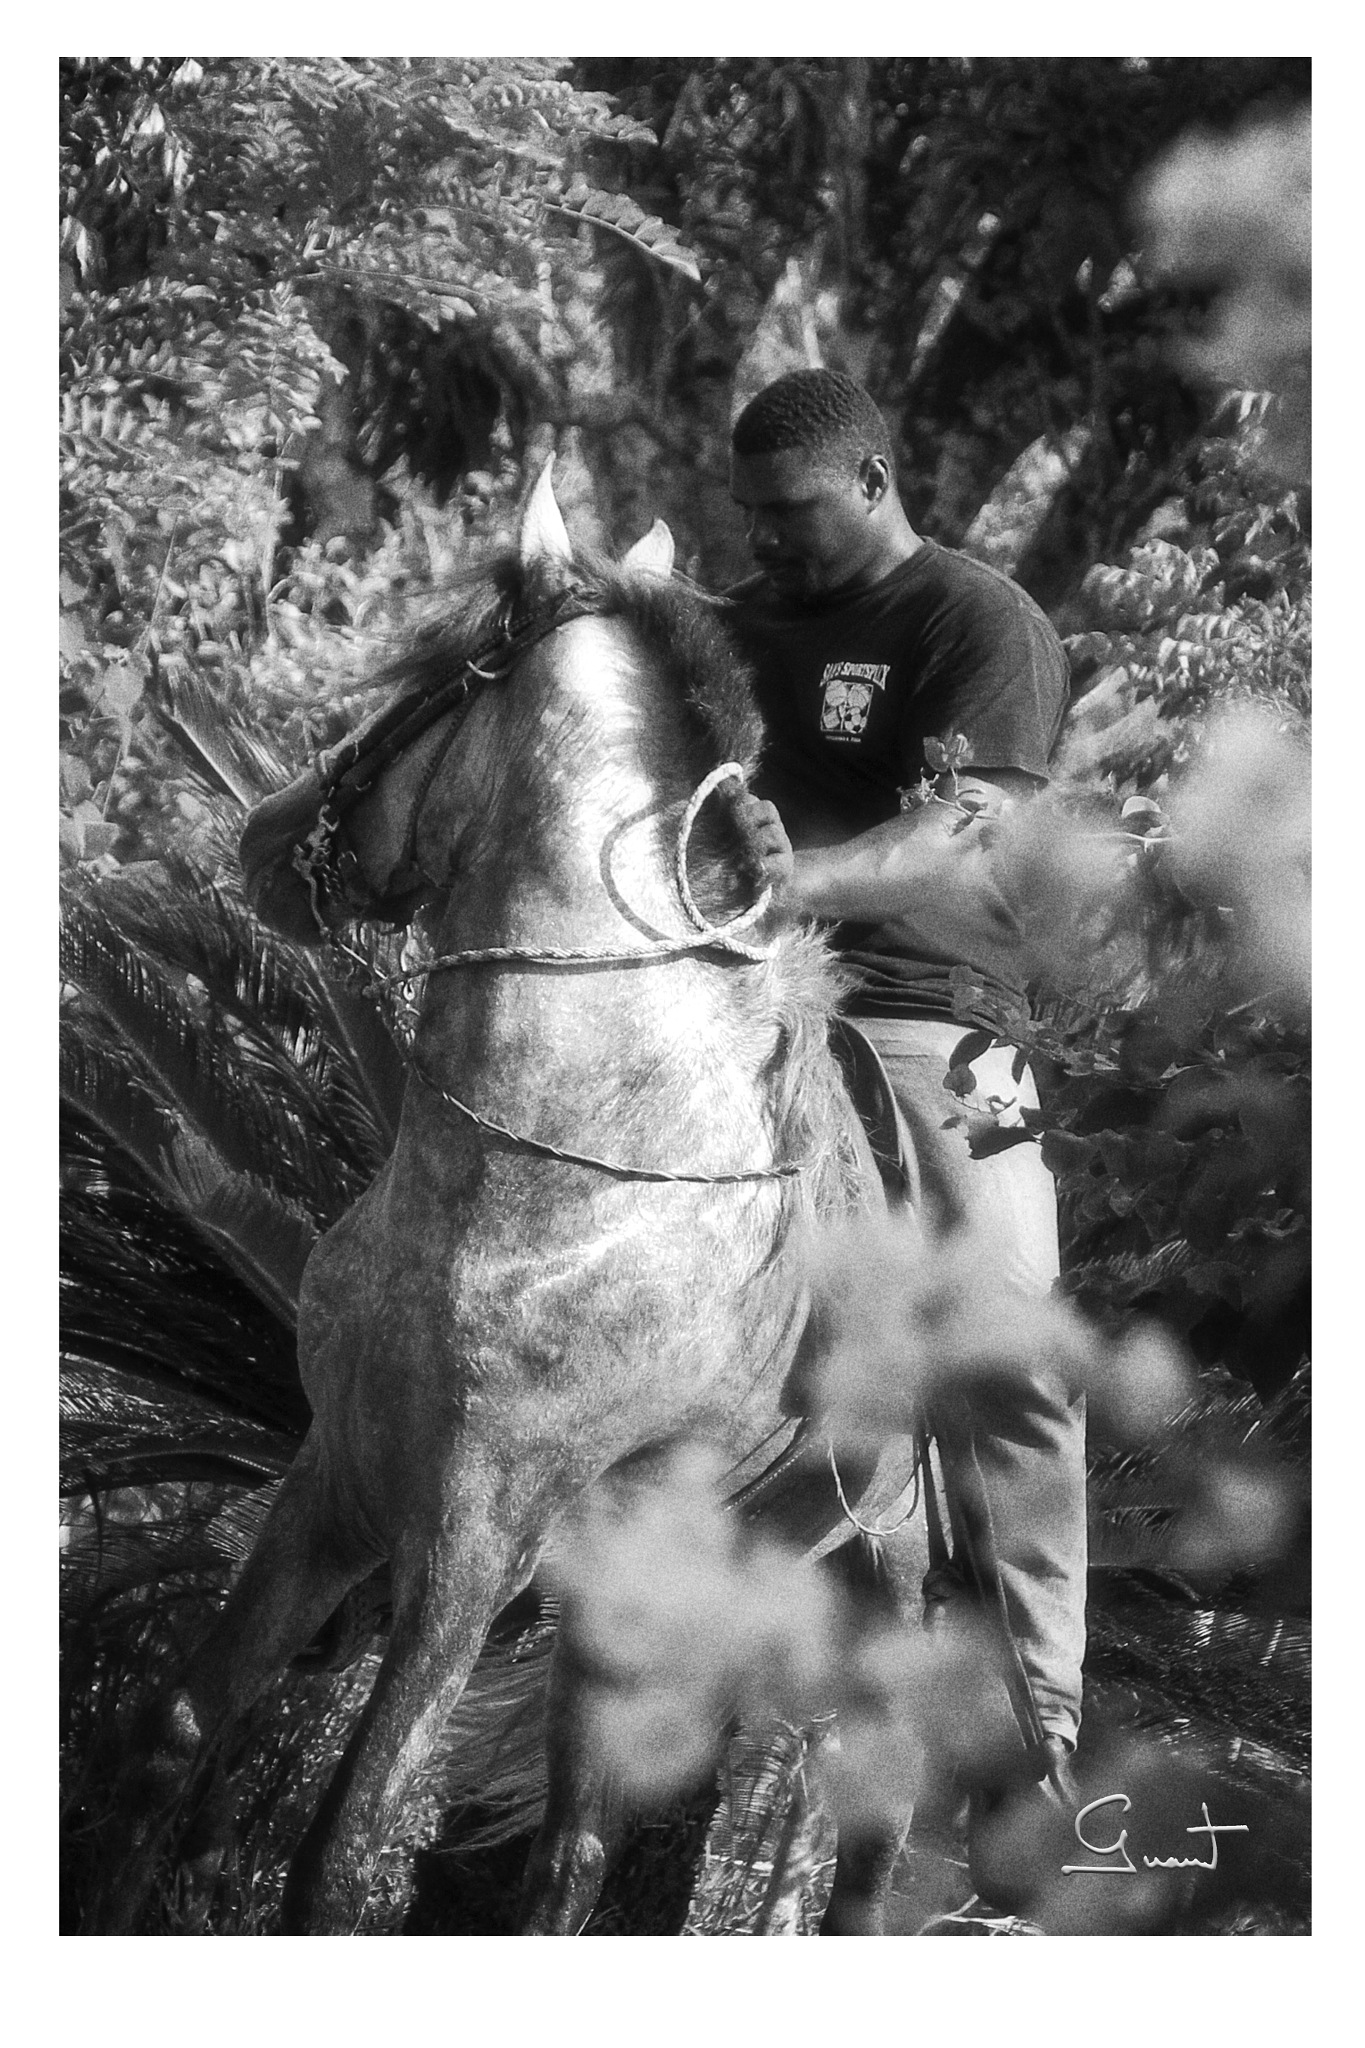 The men and his horse by PeterGrant